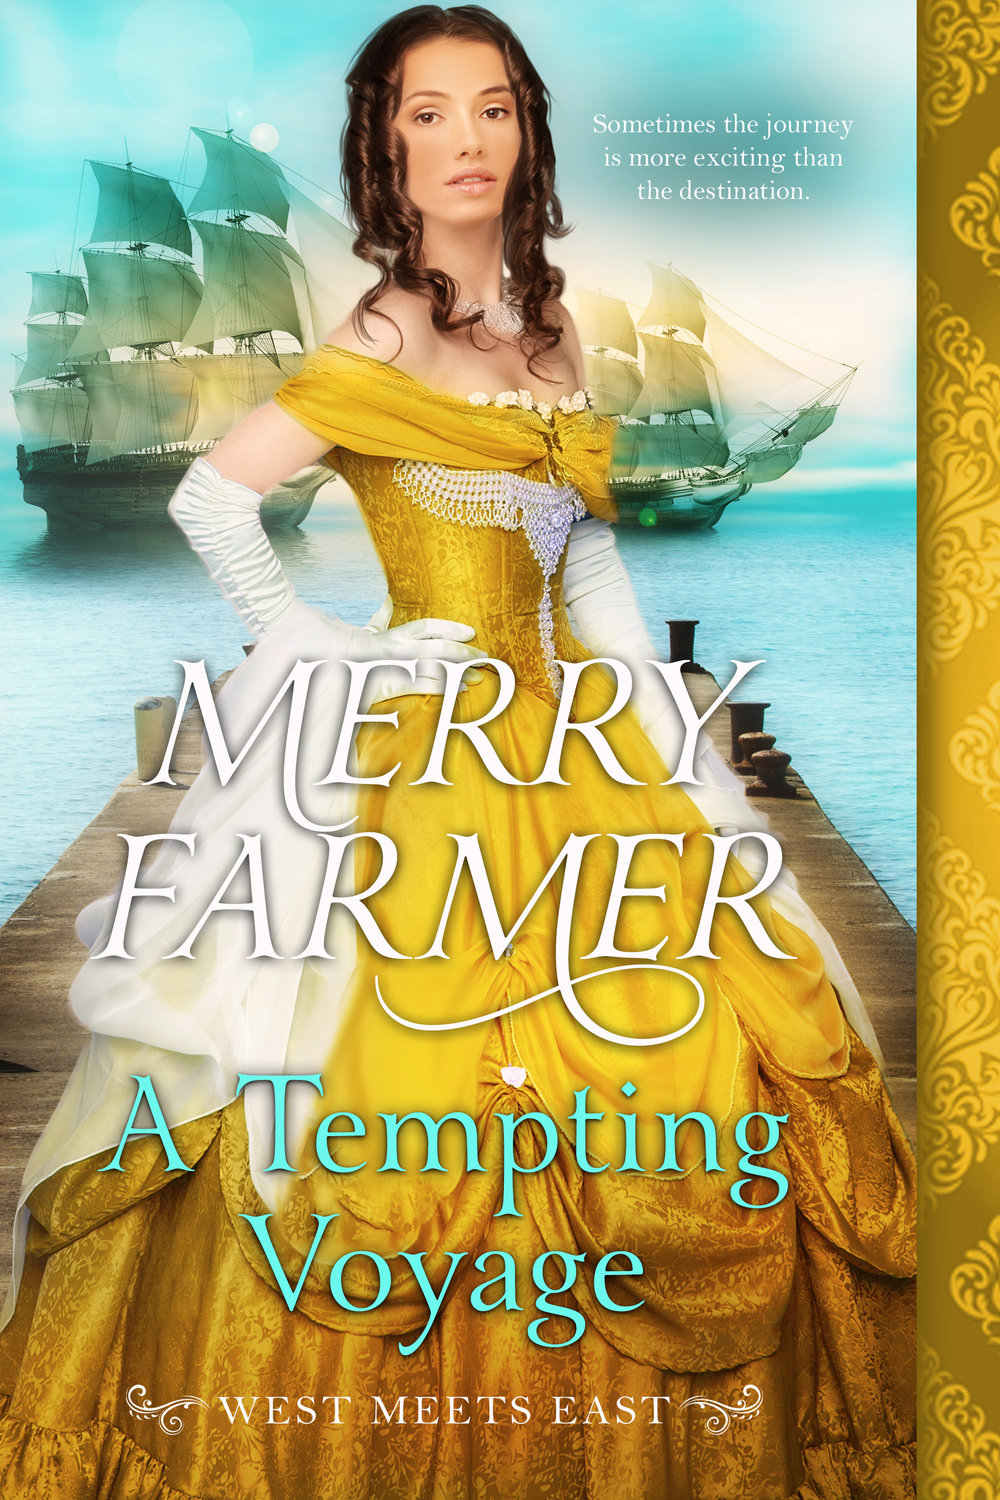 A Tempting Voyage (Book 6) - Captain Albert Tennant has lived most of his life on the sea, in spite of his noble status. It is his home and his passion. But the adventure of transporting several of the young women from Haskell, Wyoming to their new lives in England has highlighted how dull his own life has become. Until Domenica Ortega steps aboard his ship.Domenica is more than ready to give up her life as a soiled dove for the promise of a fresh start that London provides. But beneath her brash, devil-may-care attitude lurks a secret fear that she hides from the world. It shakes her to her core that handsome Captain Tennant can see right through her mask to the heart she tries to keep hidden. And unlike any other man, Albert makes her feel safe.When a member of Albert's crew goes missing halfway across the ocean, Domenica and Albert must discover what happened with very little evidence to go on. They have until the ship reaches London to uncover the perpetrator and bring them to justice. But mysteries are difficult to solve when temptation abounds, and the biggest question of all may be how Albert will be able to let Domenica go at the end of their voyage.PLEASE BE ADVISED: Steam level – HOT